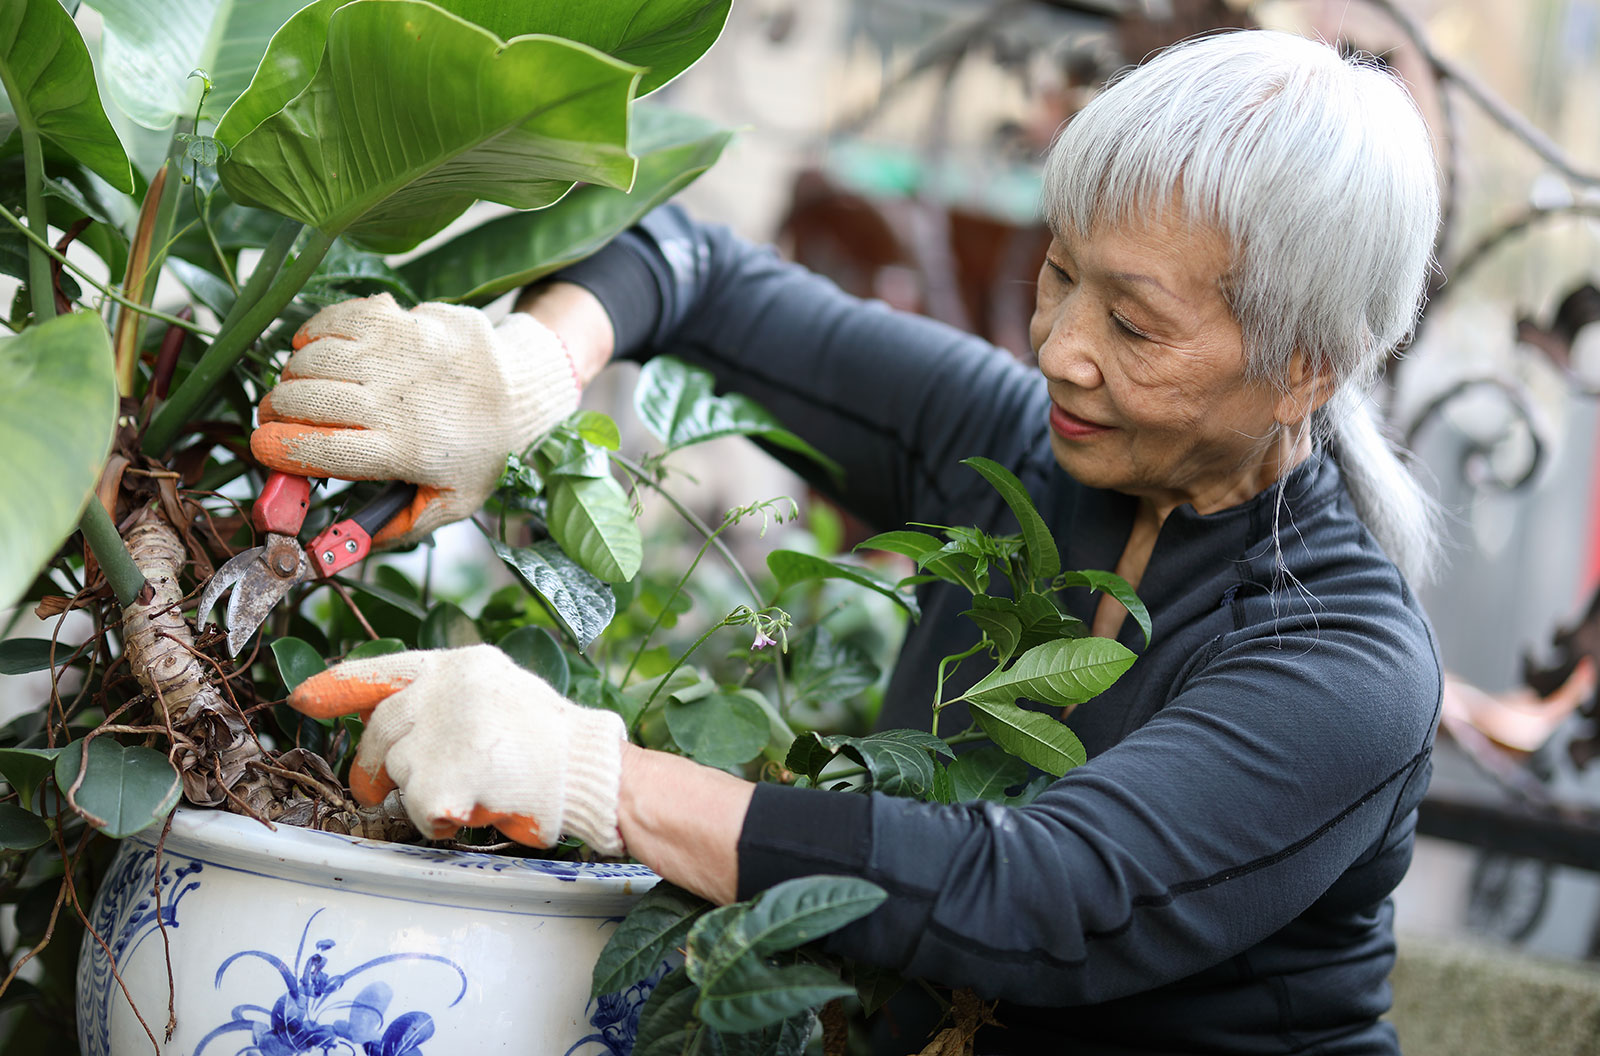 A senior retiree pots a plant in her garden at home